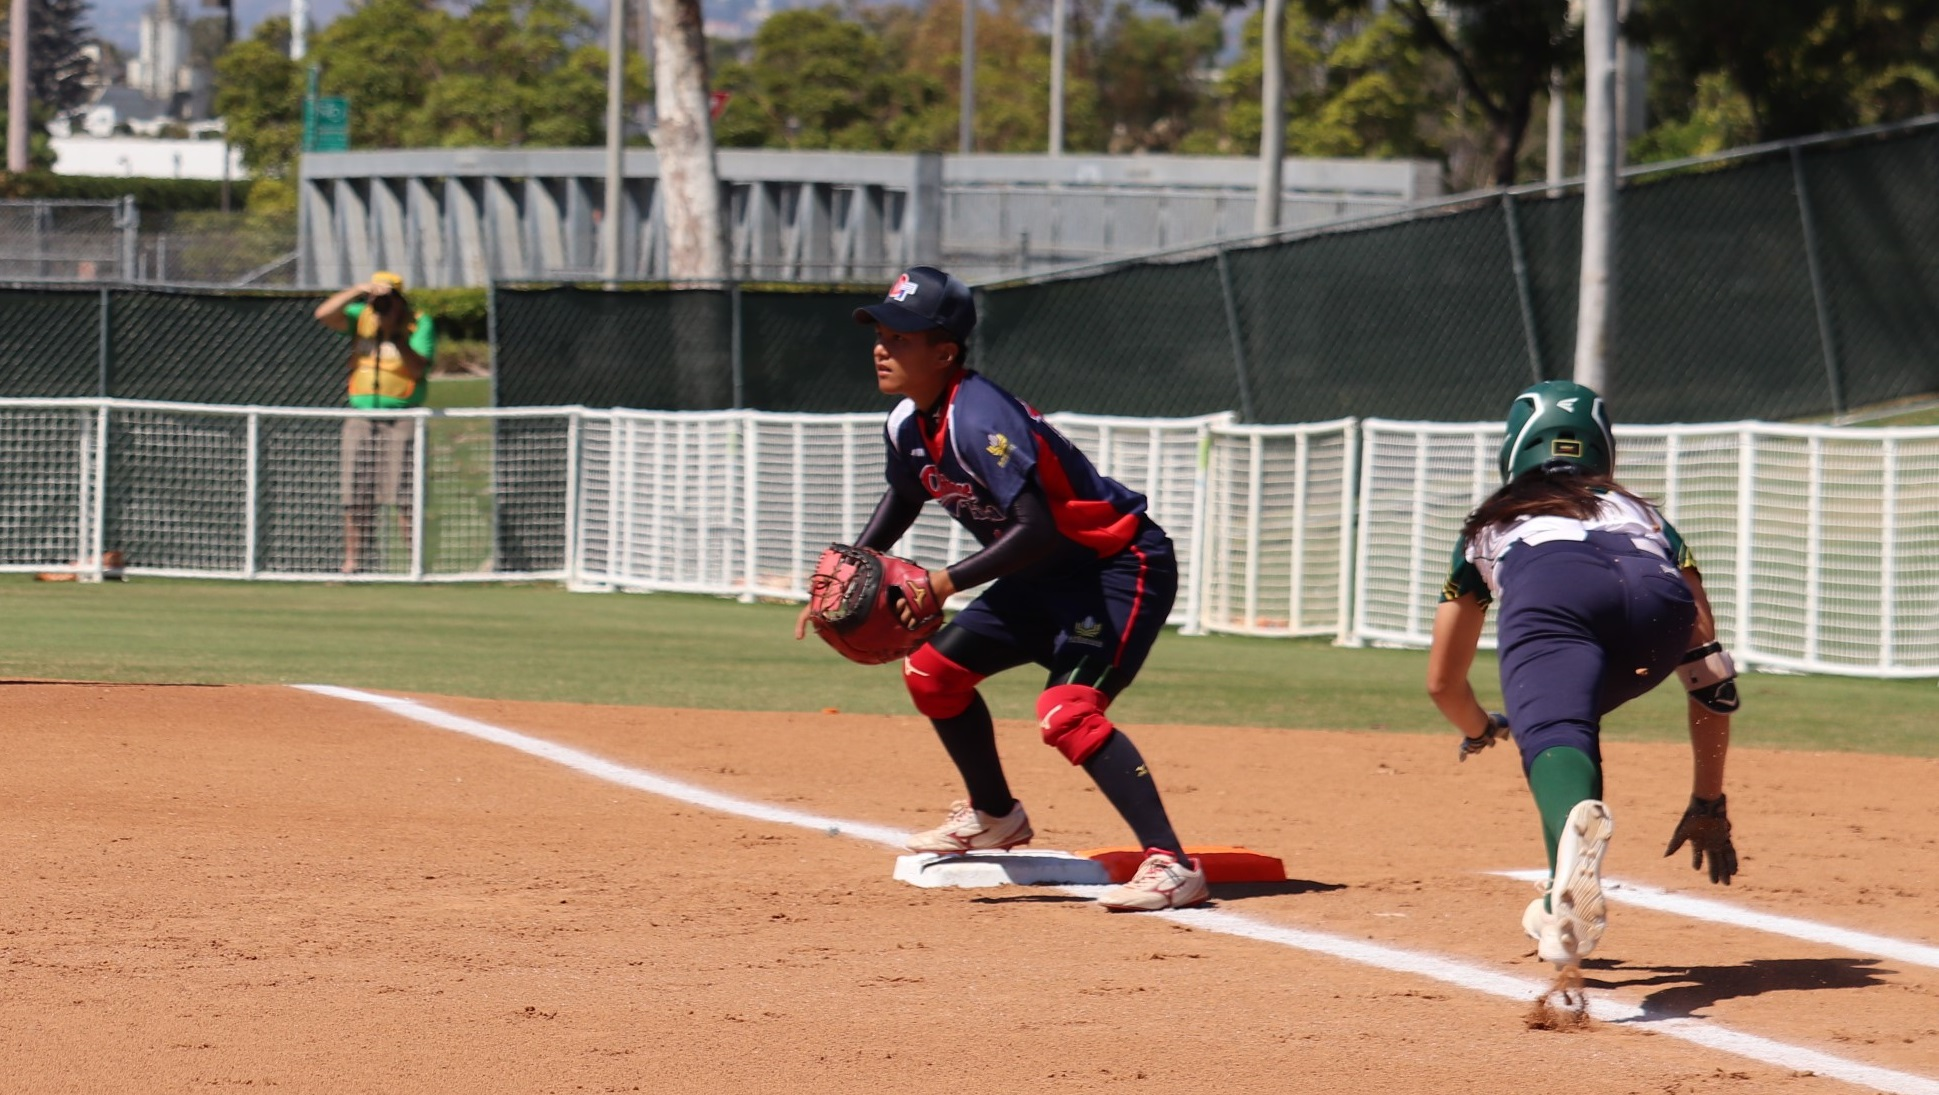 U-19 Women's Softball World Cup 2019 - The official site - WBSC